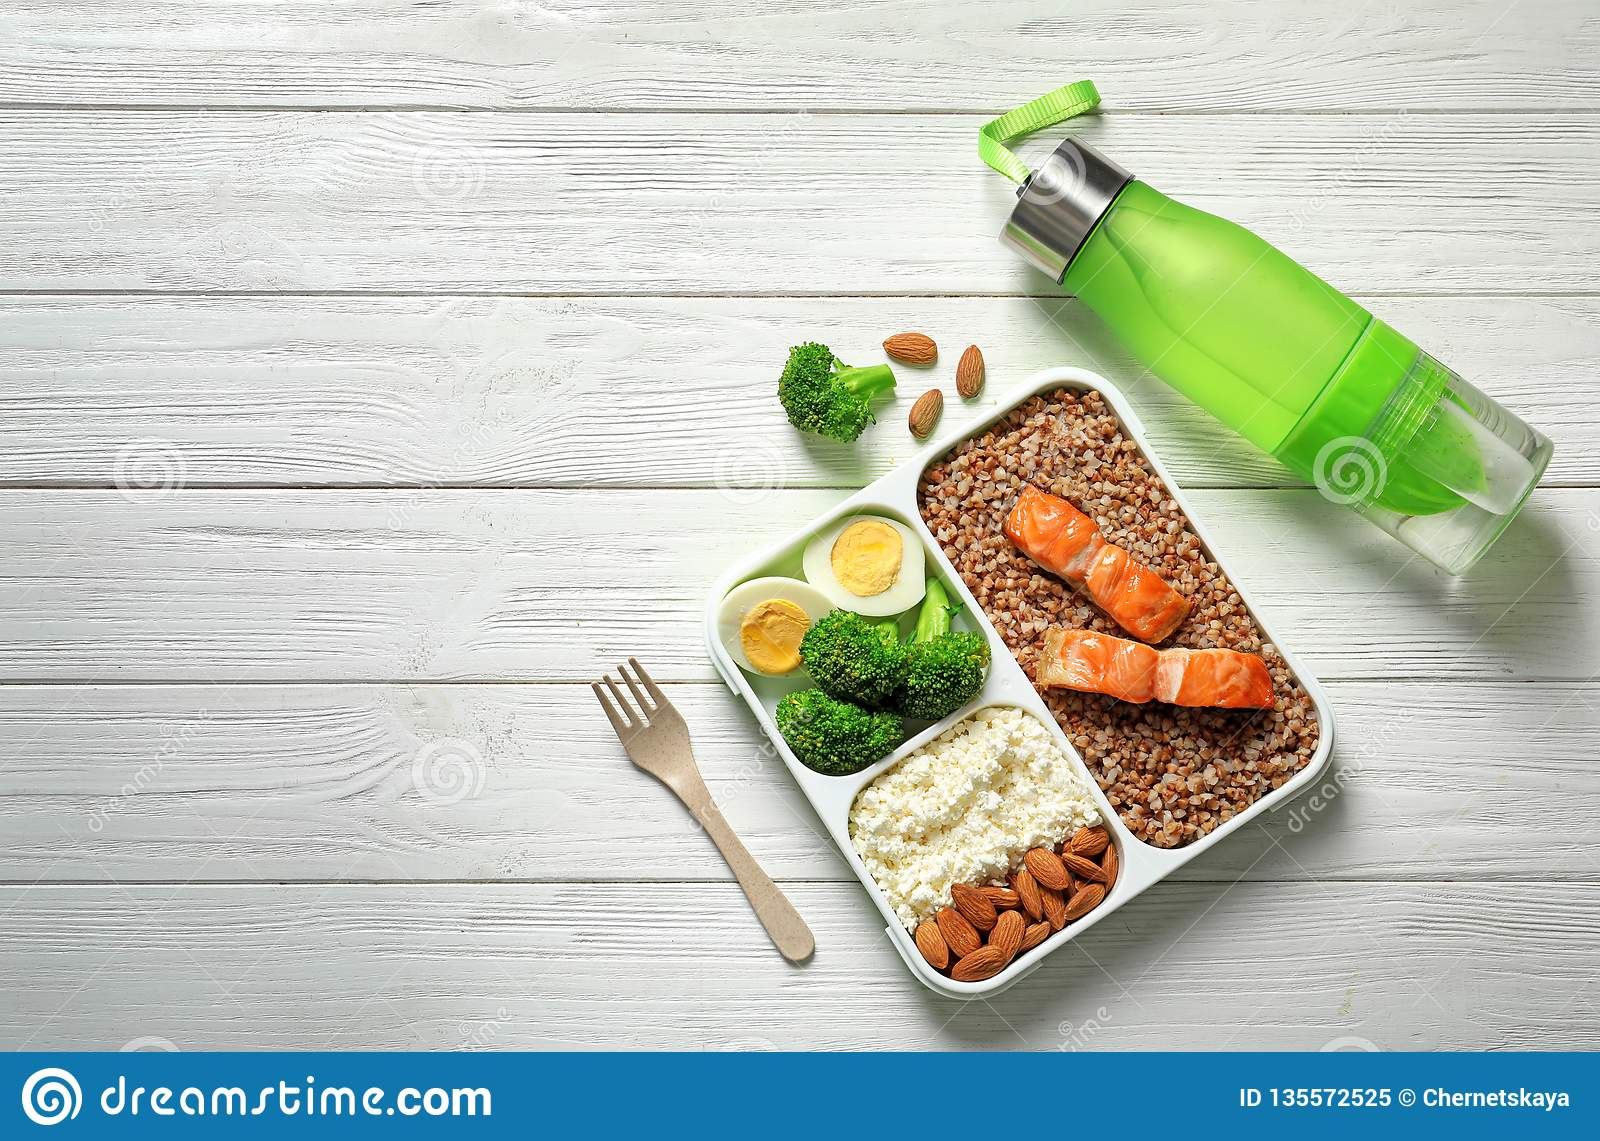 Container with natural healthy lunch, bottle of water and space for text on table, top view. High protein food